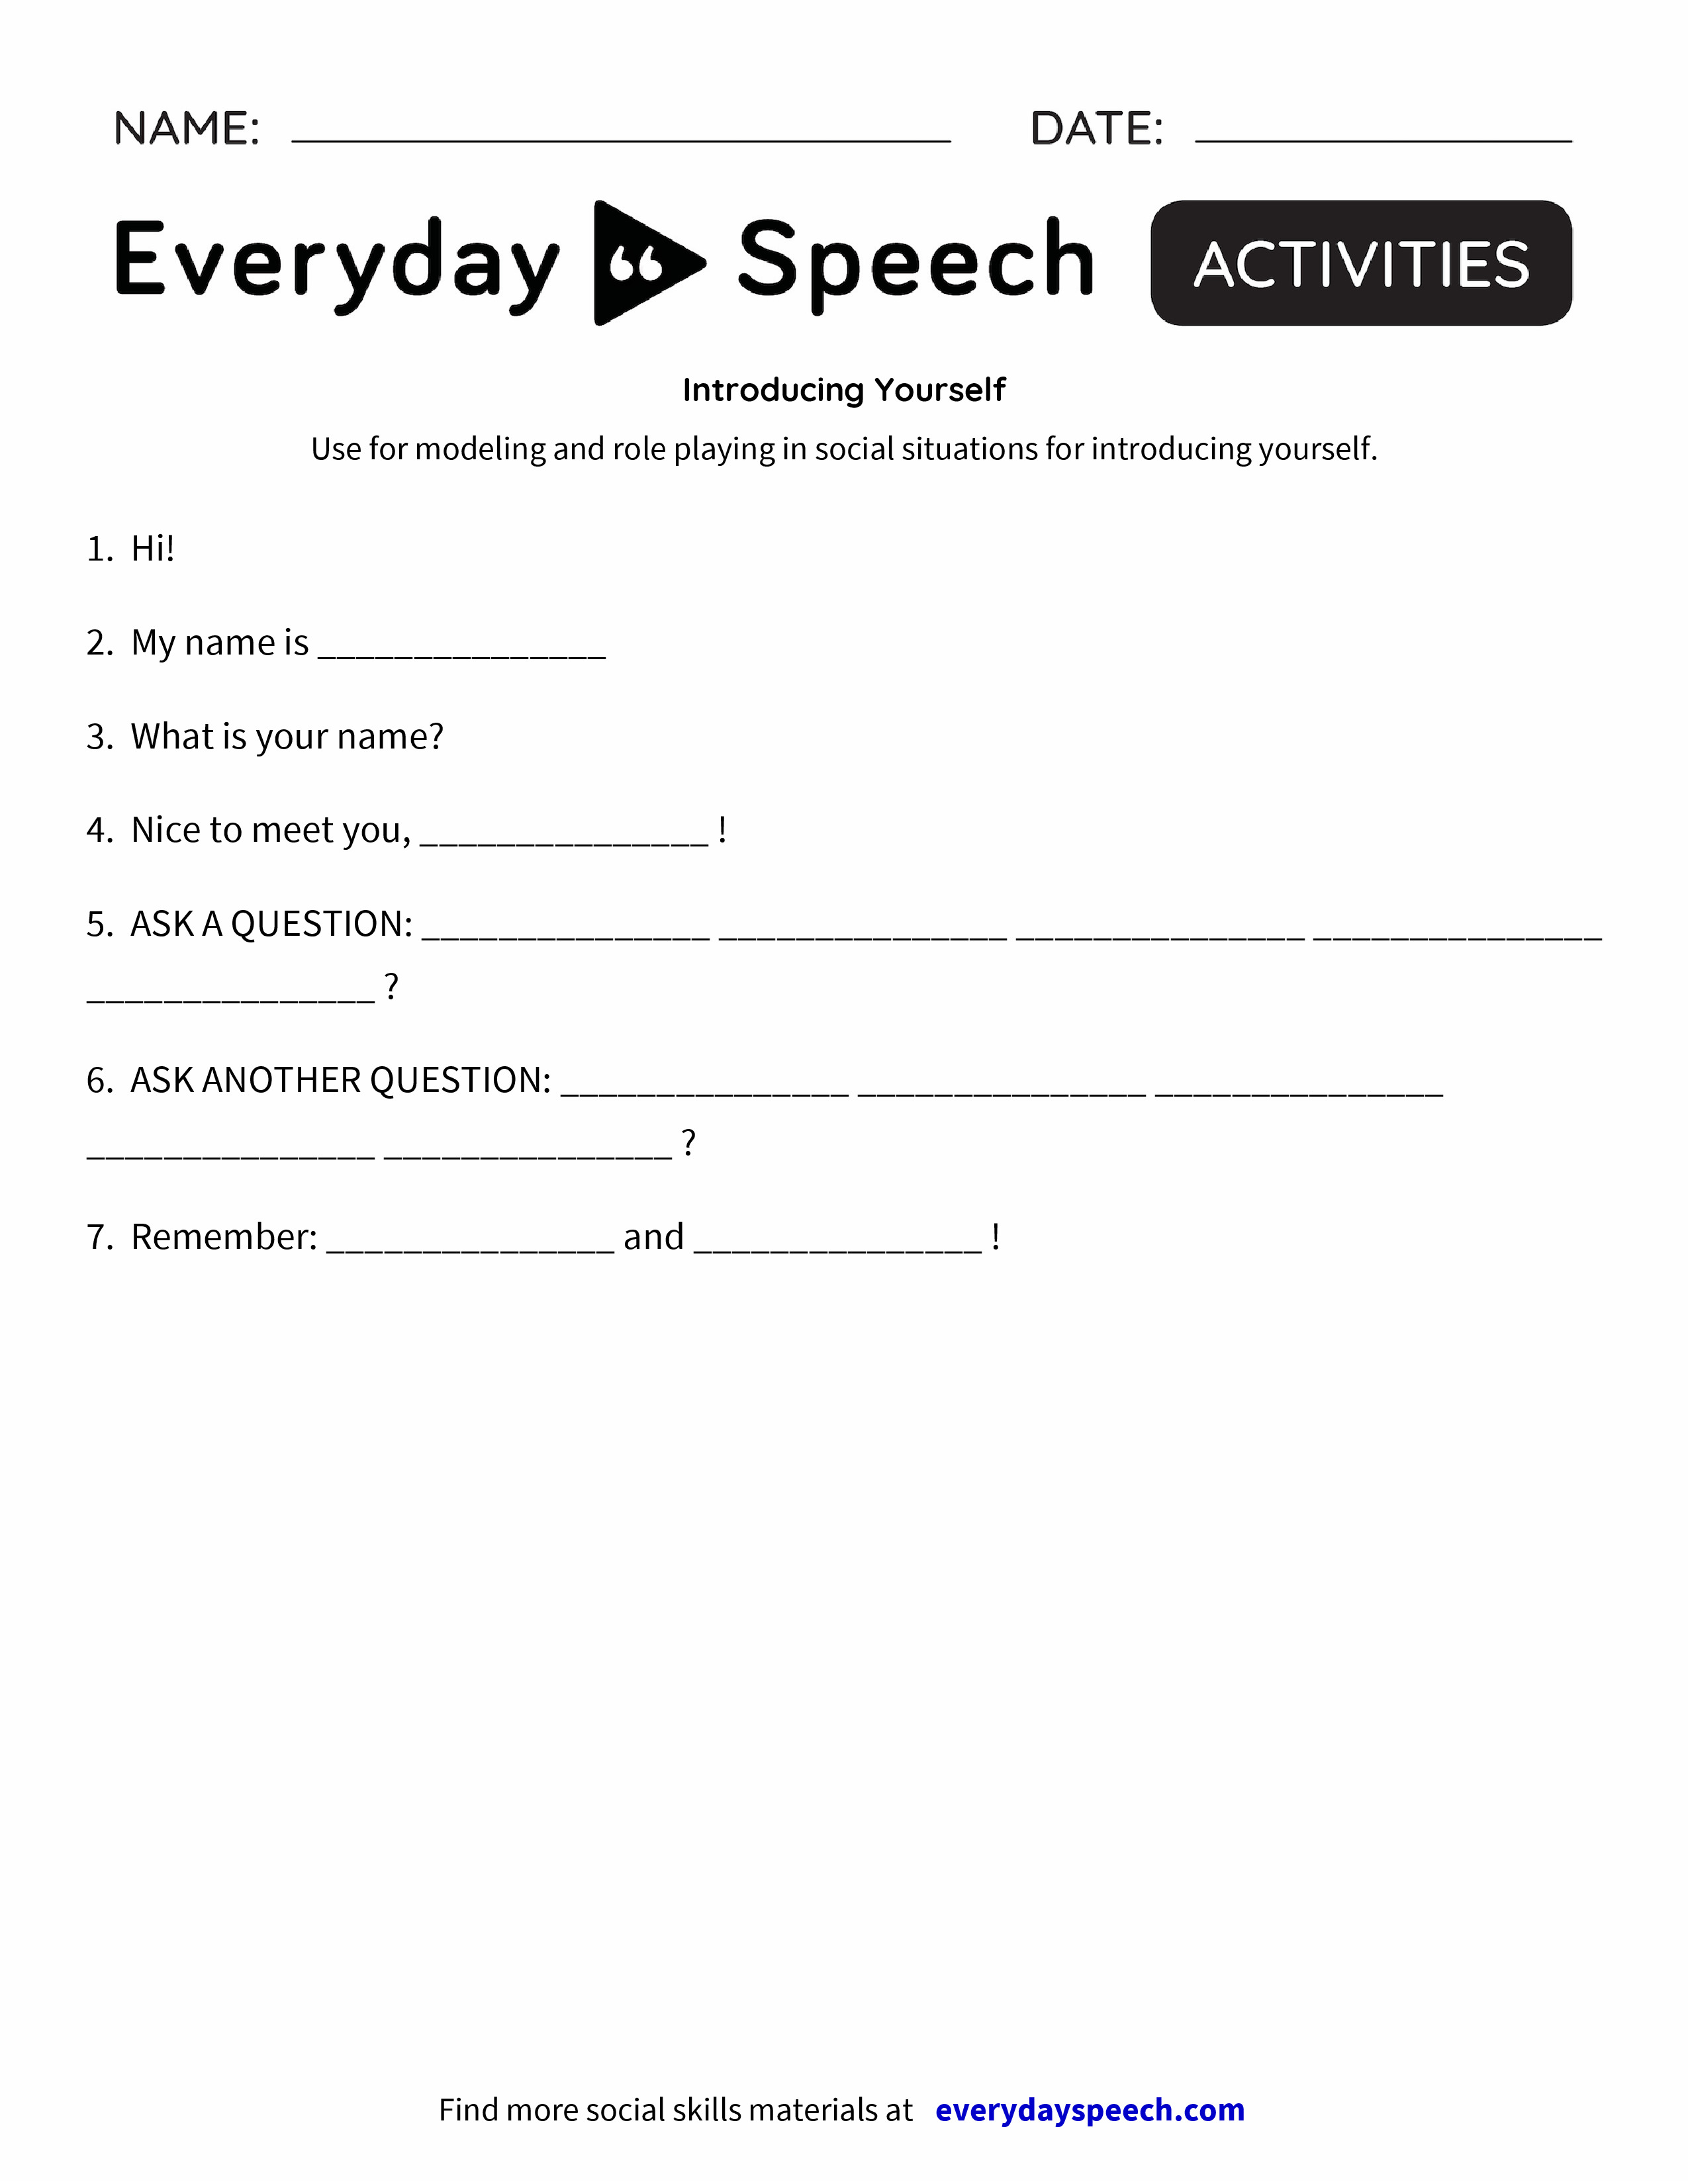 worksheet Negative Self Talk Worksheet most downloaded worksheets everyday speech introducing yourself